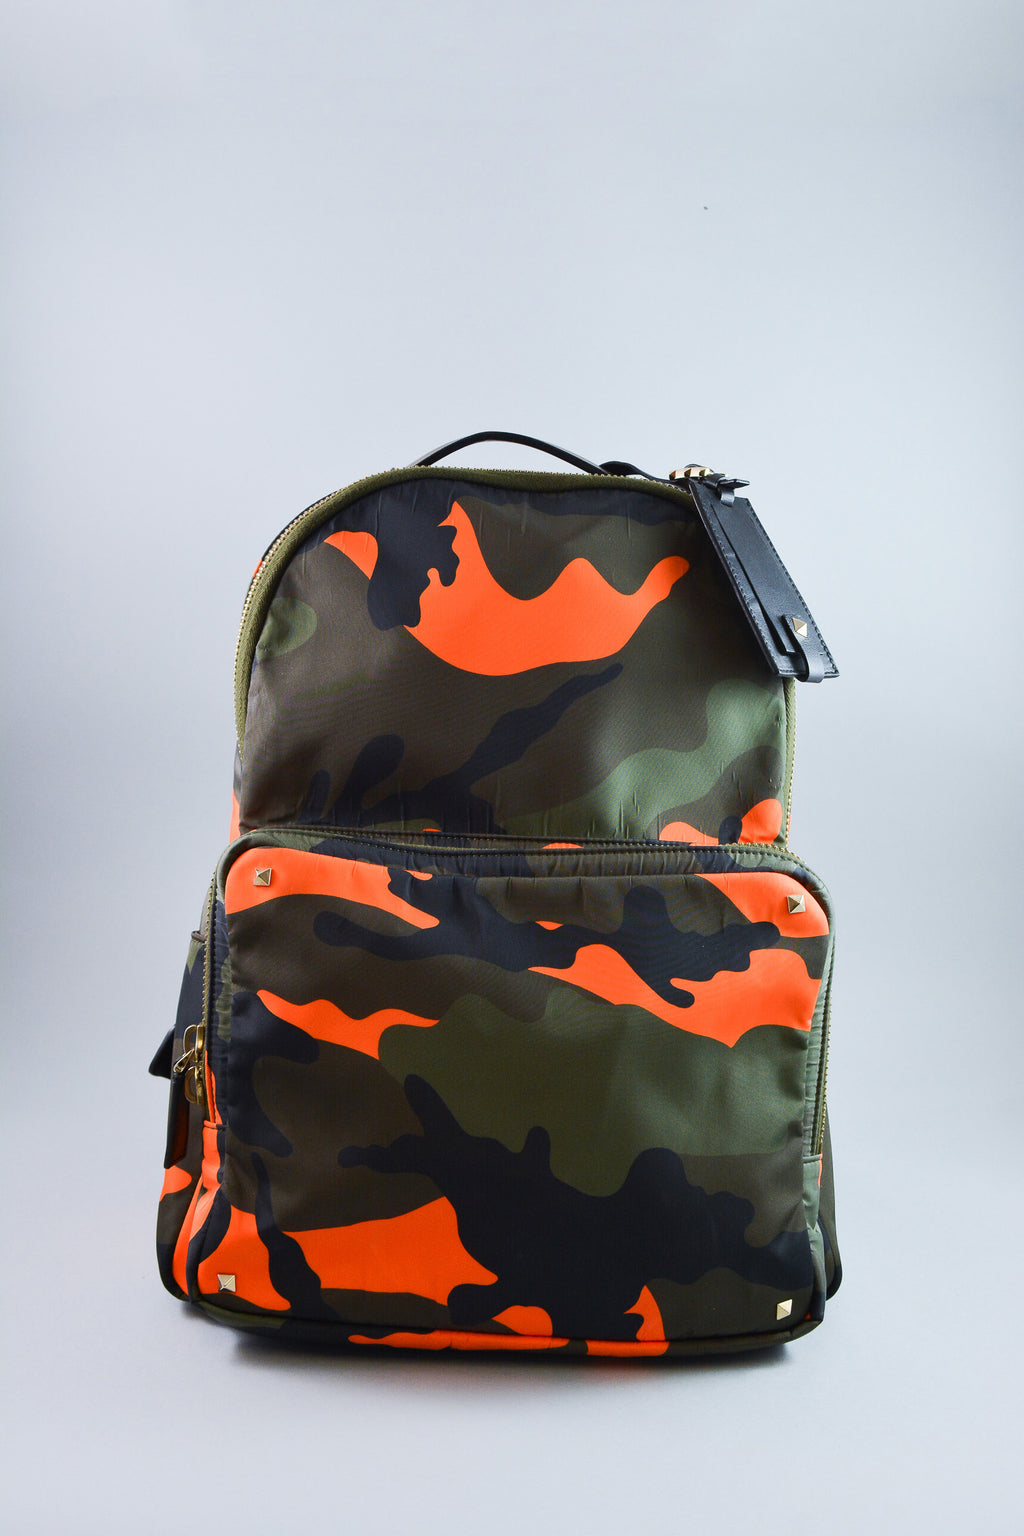 Valentino Green/Orange Camouflage Backpack